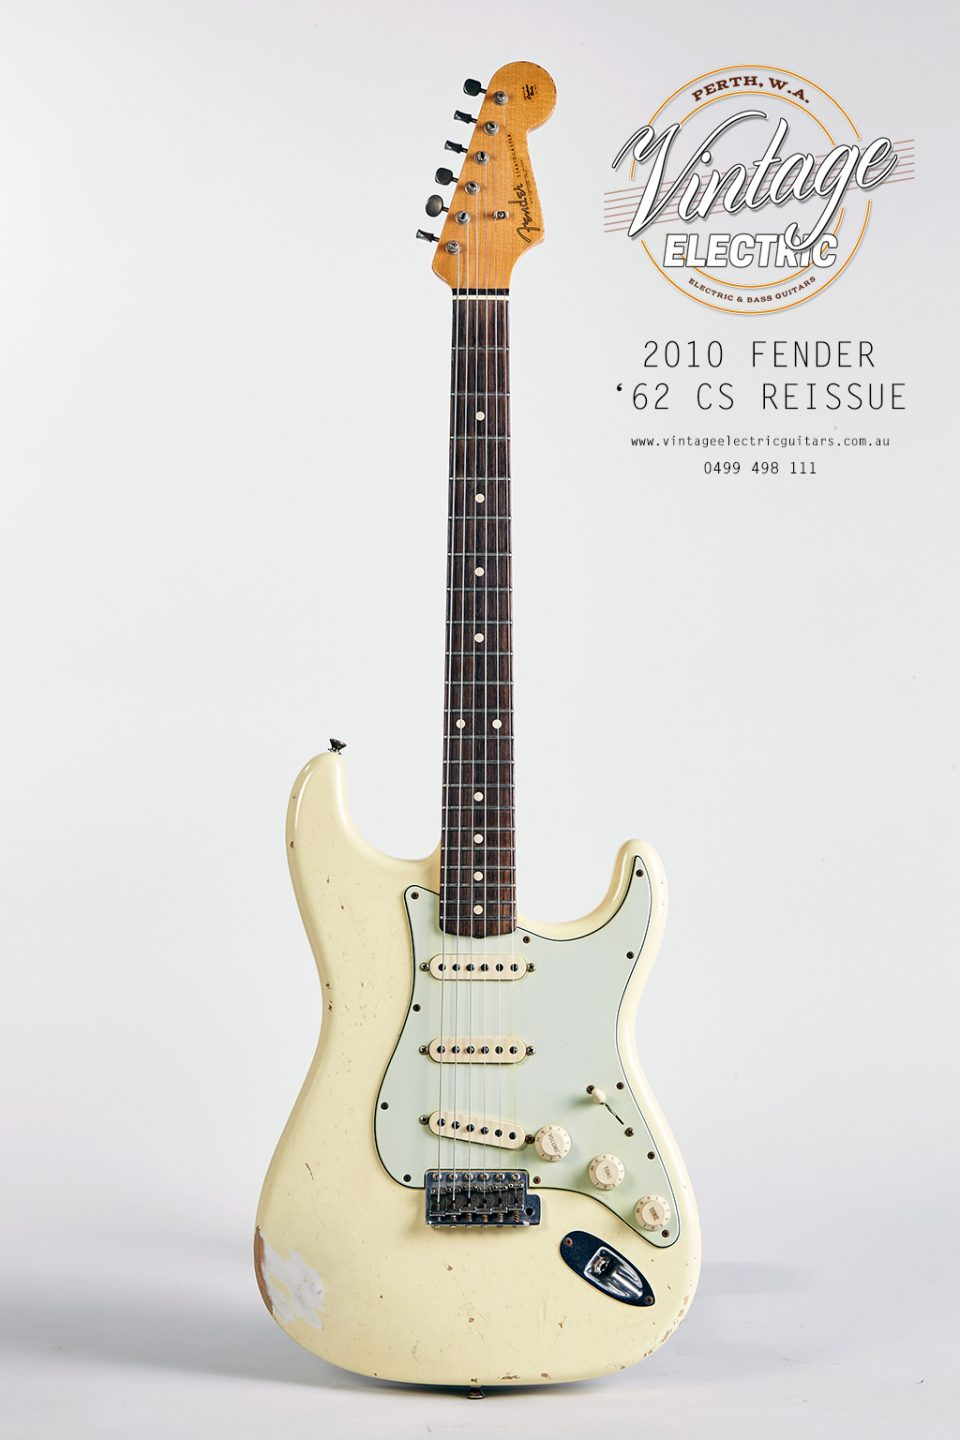 2010 Fender Stratocaster 1962 Custom Shop Reissue Guitar